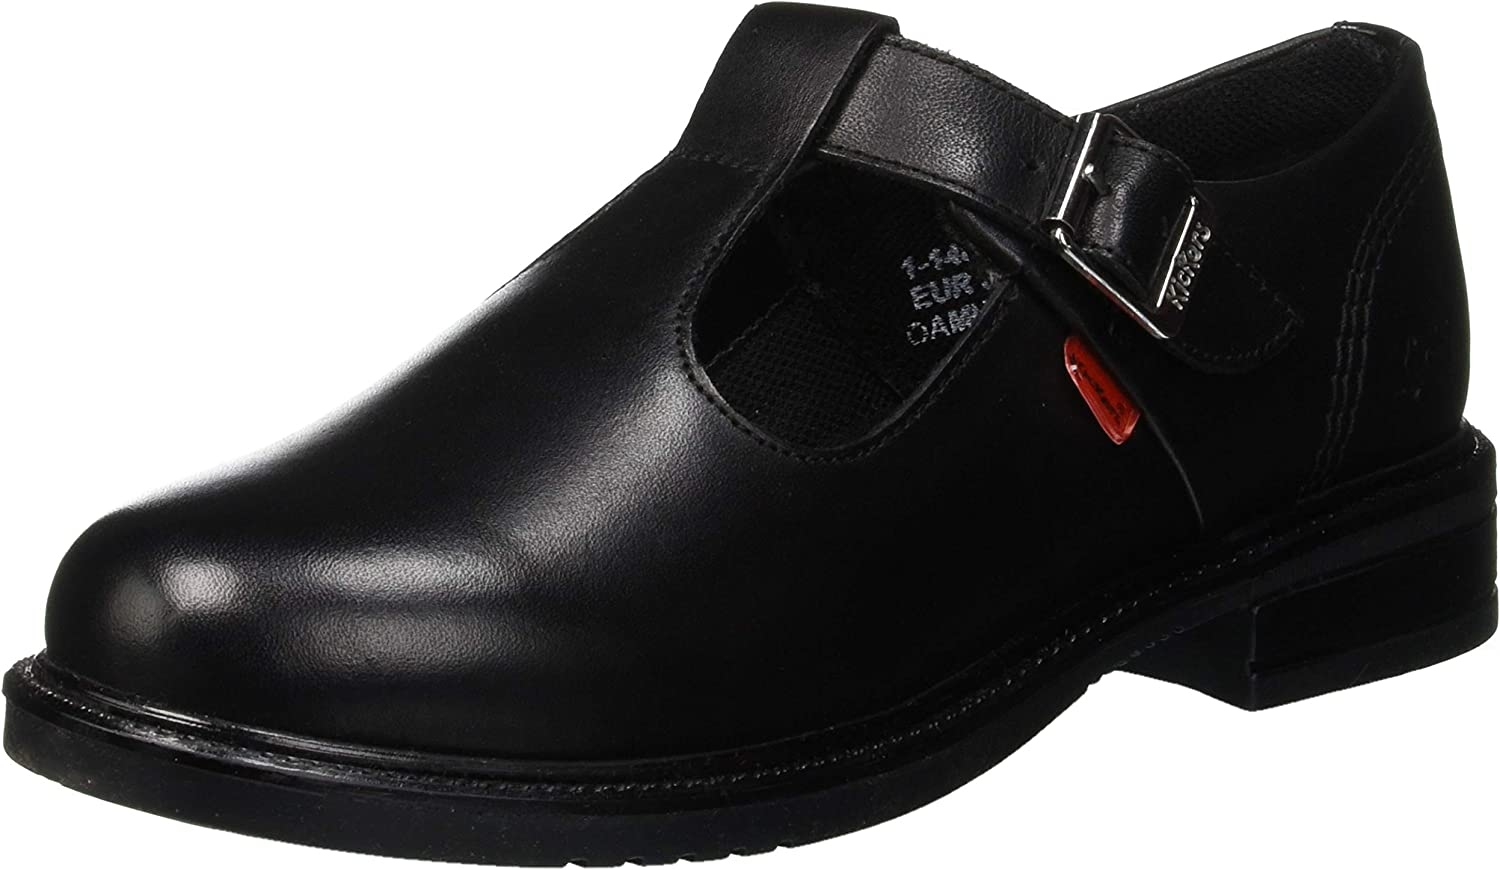 Kickers Women's ' Lach TBar shoes Black